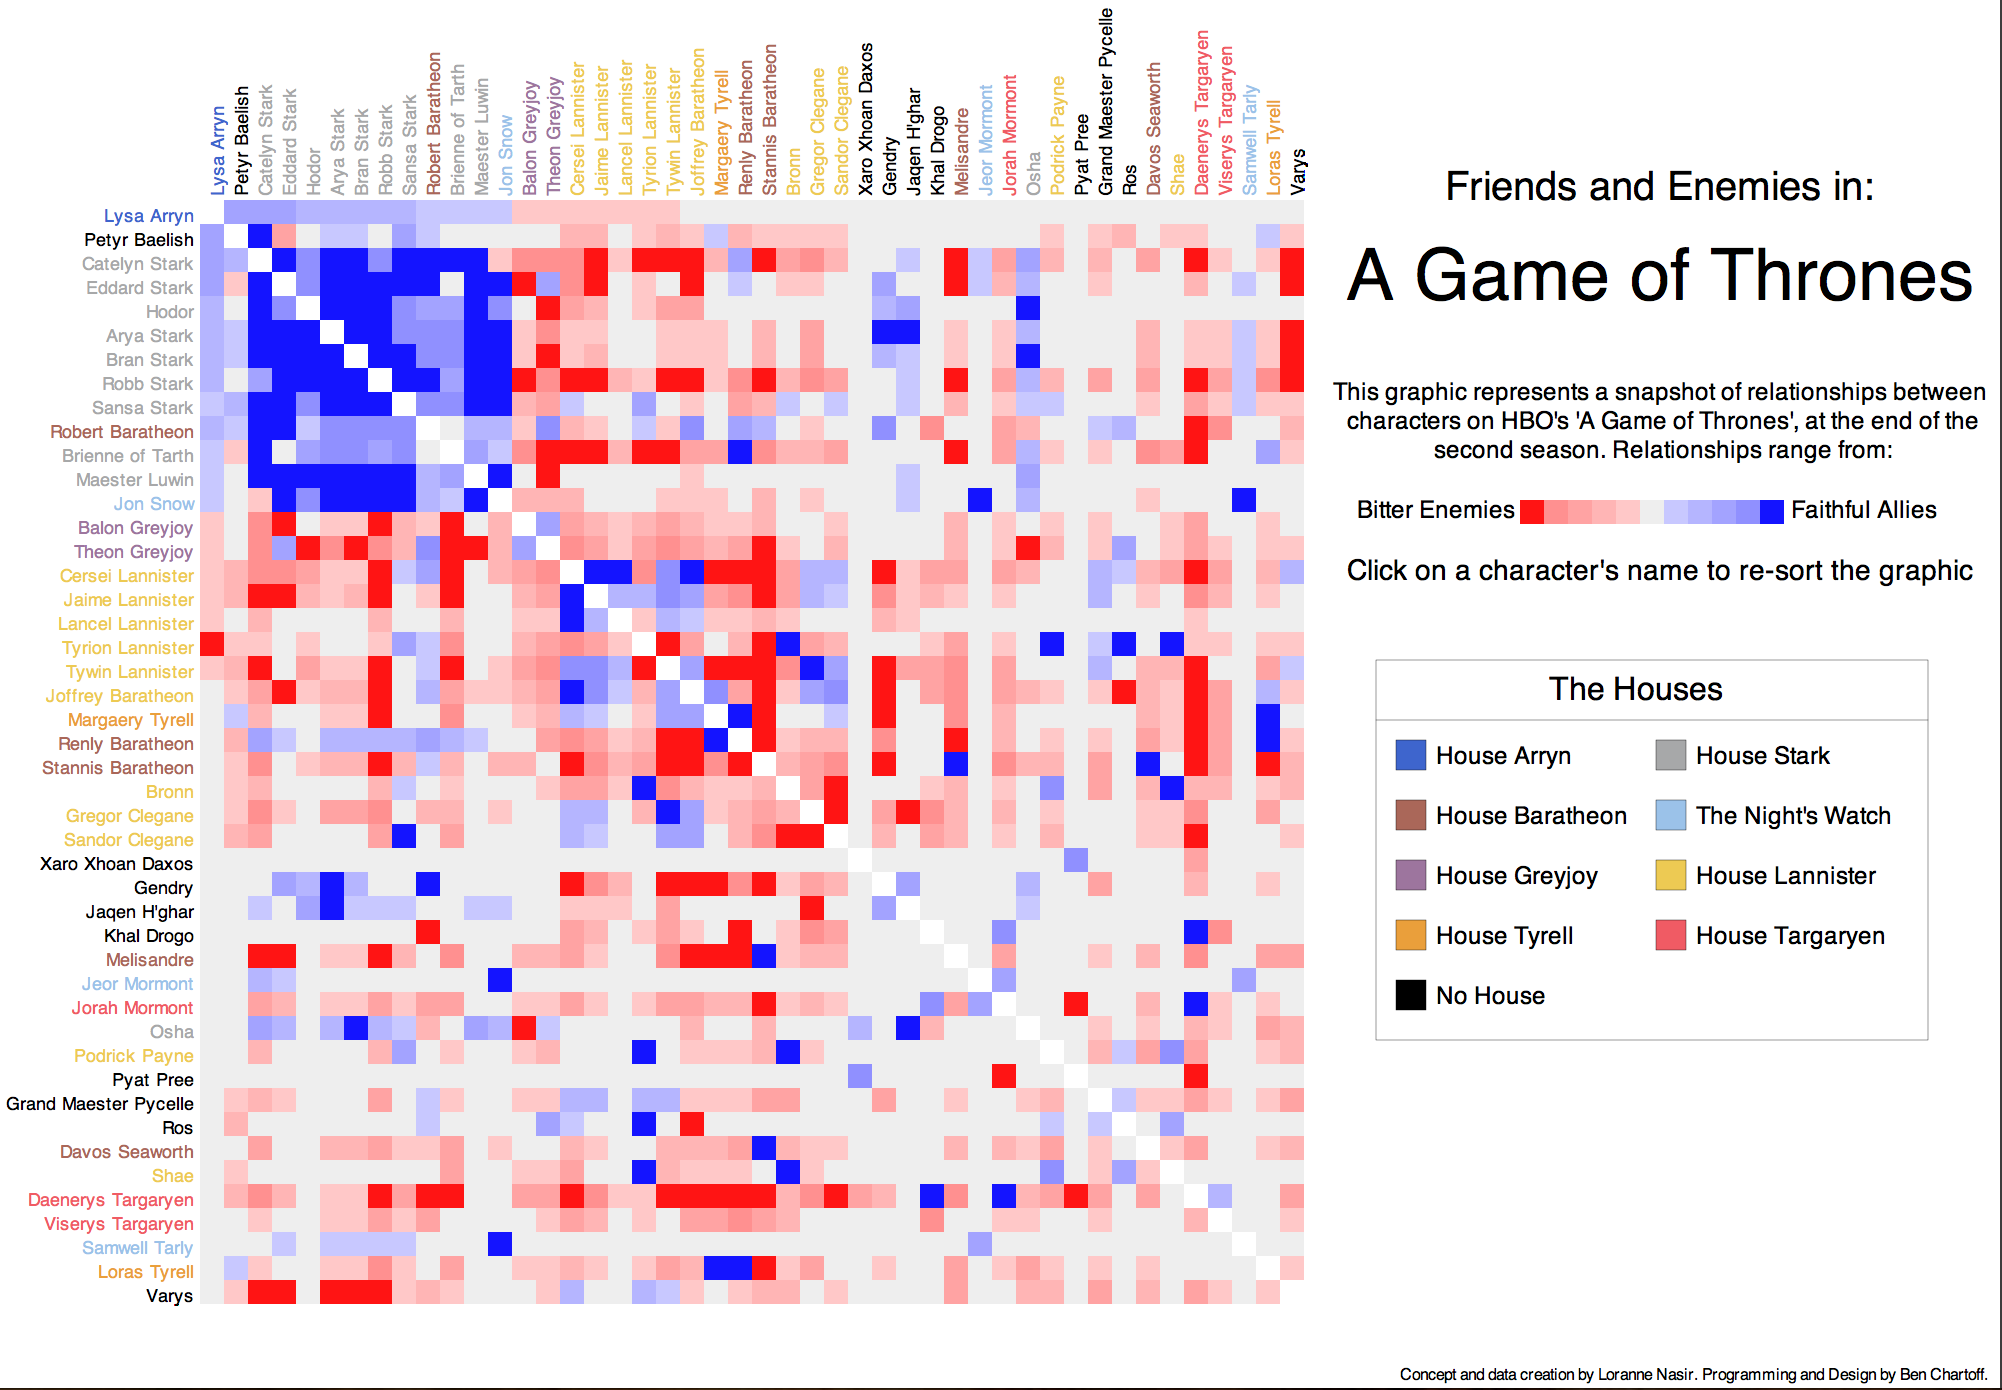 A Game Of Thrones Interactive Heat Map Depicting Relationships - Heat Map D3 Us